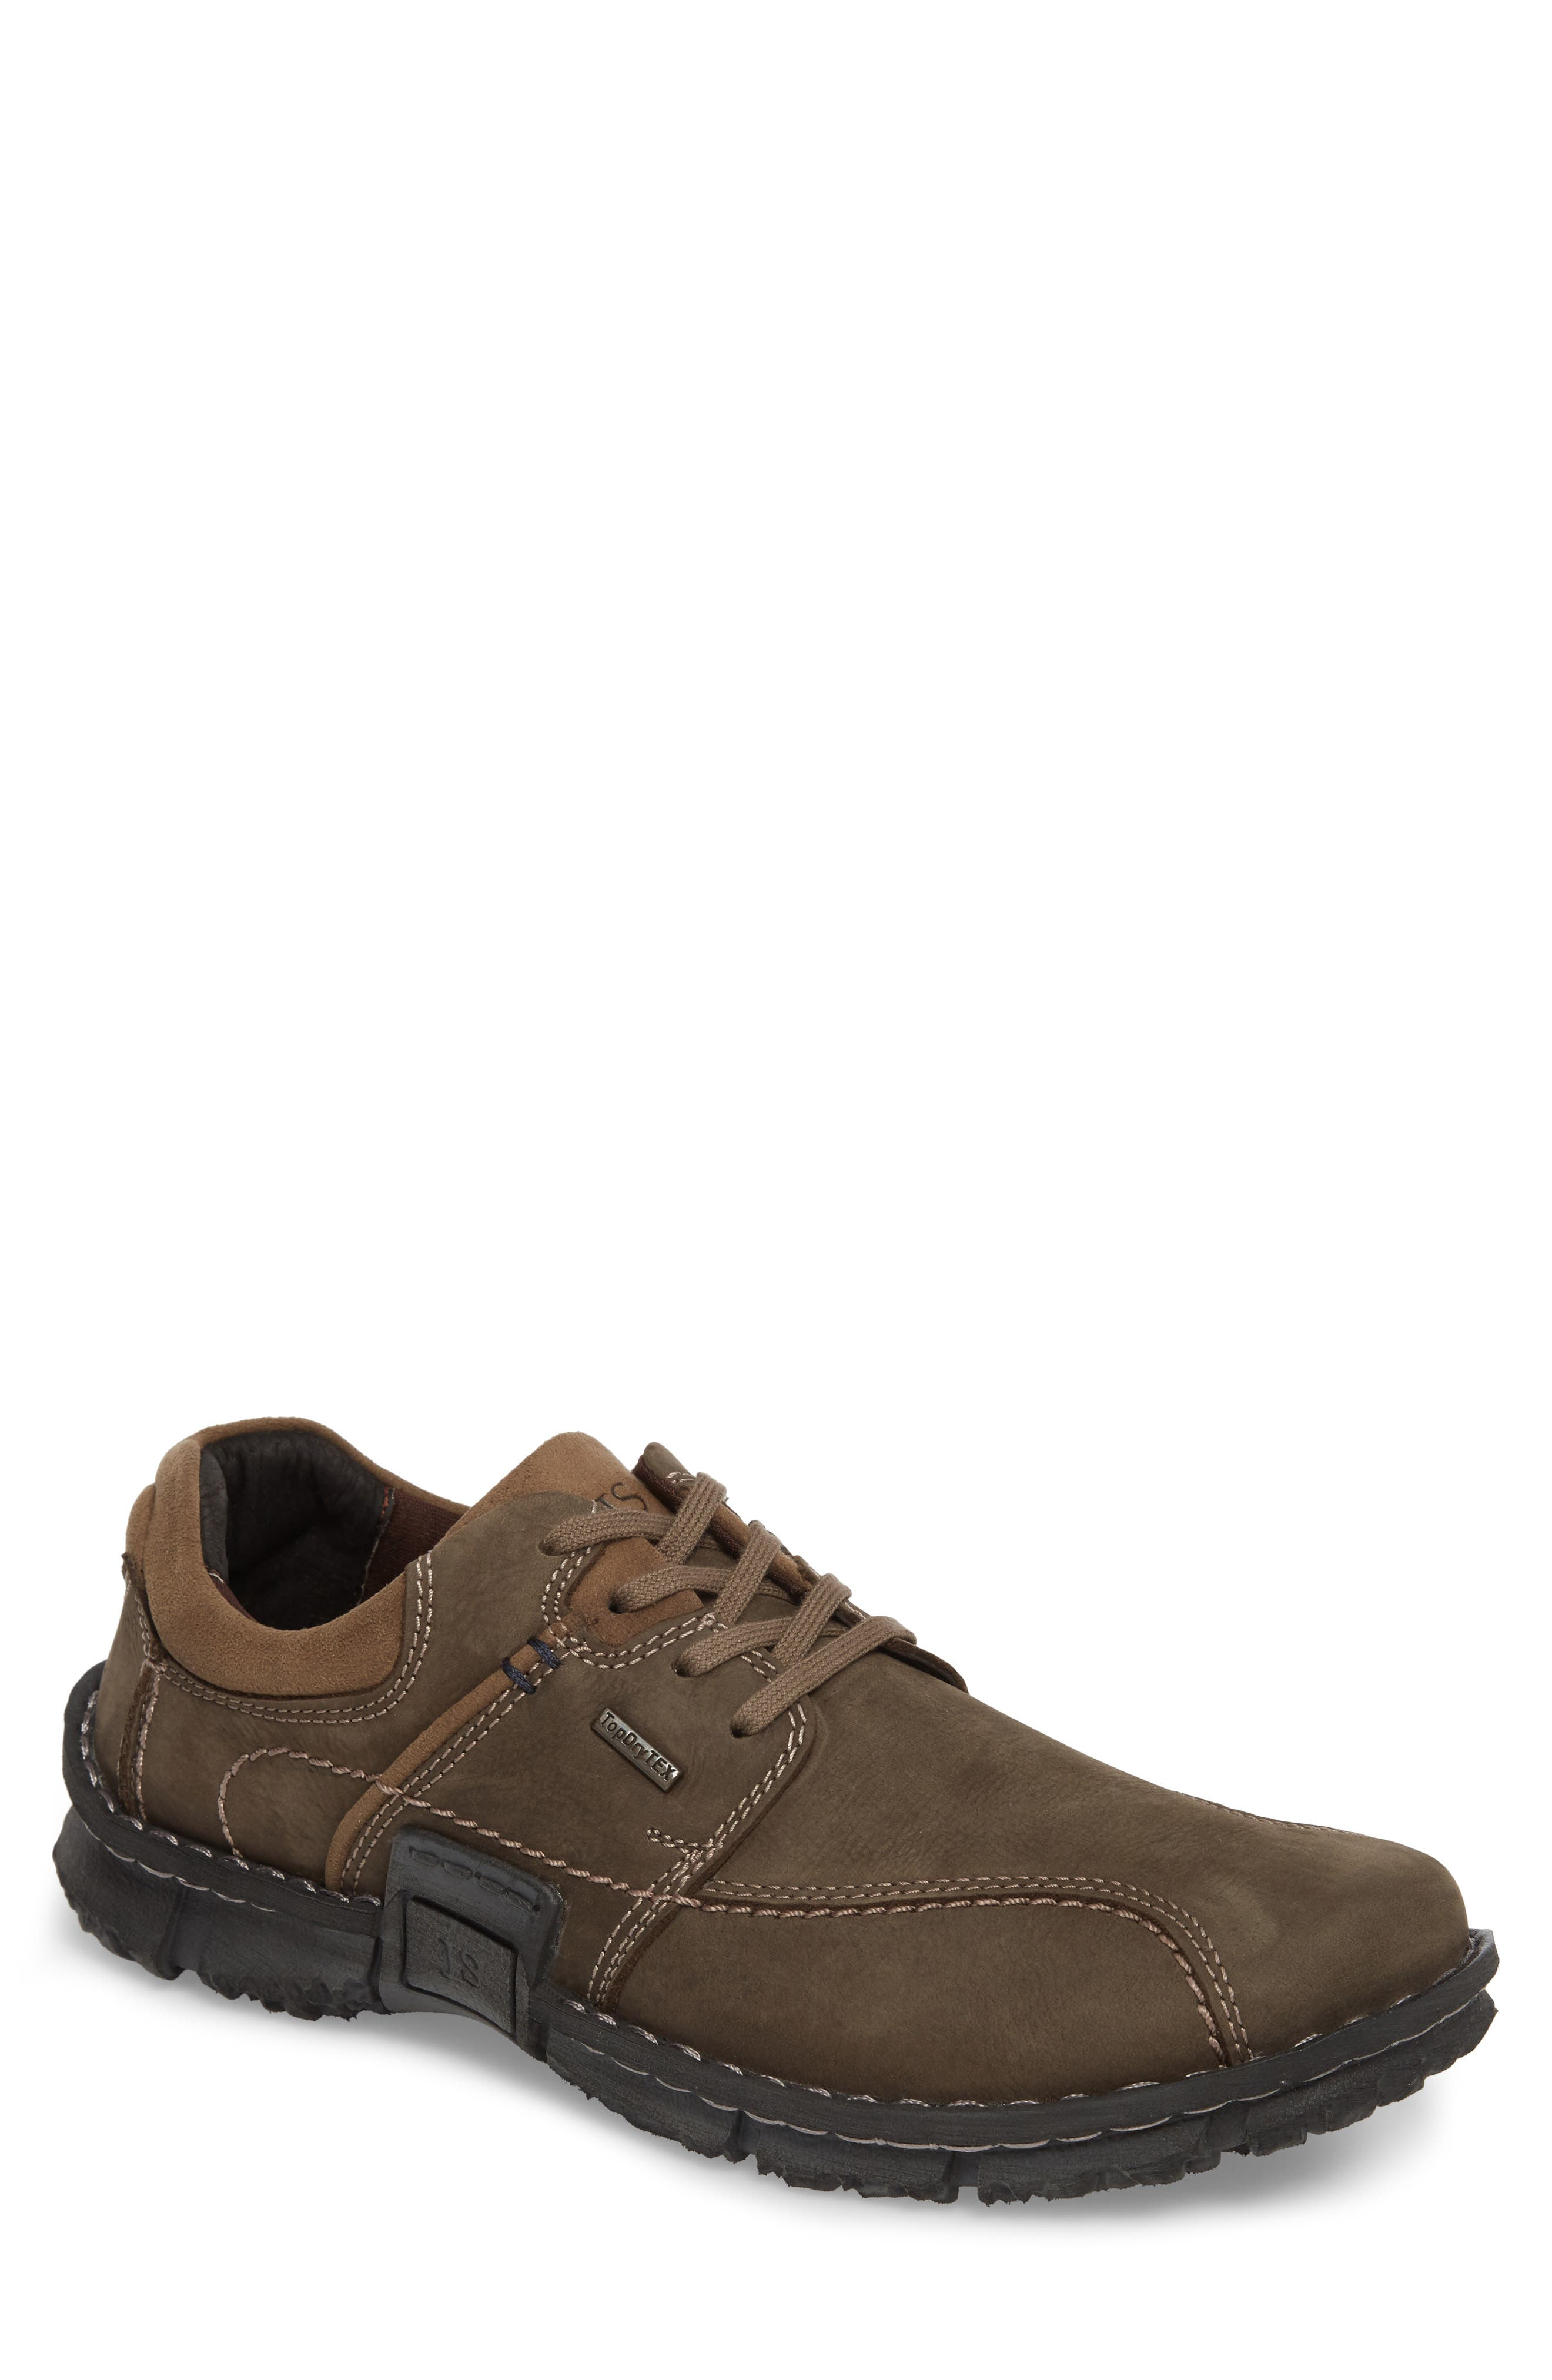 Willow Waterproof Sneaker,                         Main,                         color,